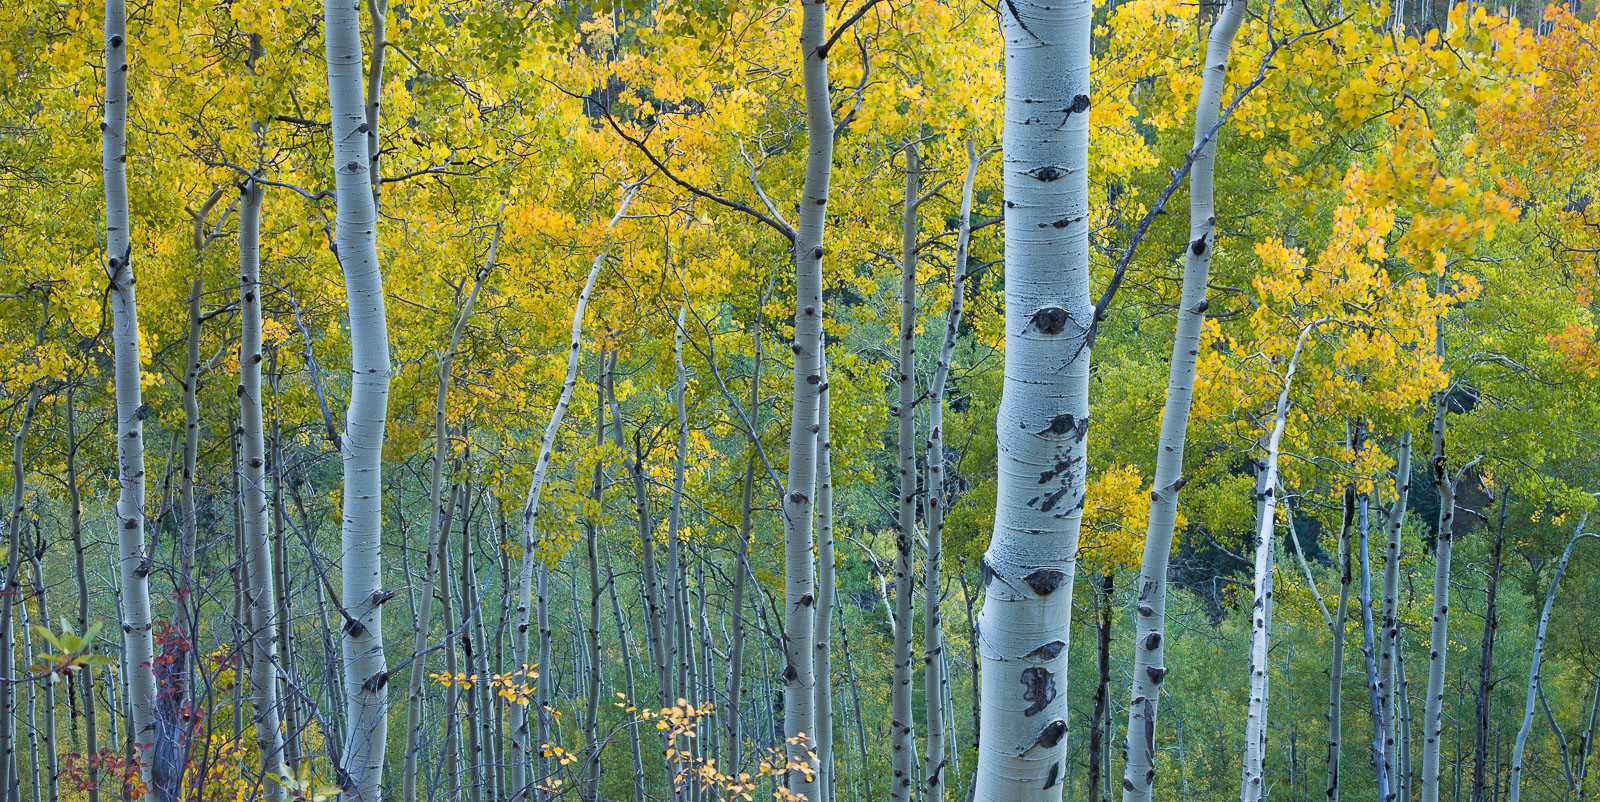 Among the valleys of Aspen the trees seem to bend towards the light trying to capture each ray.